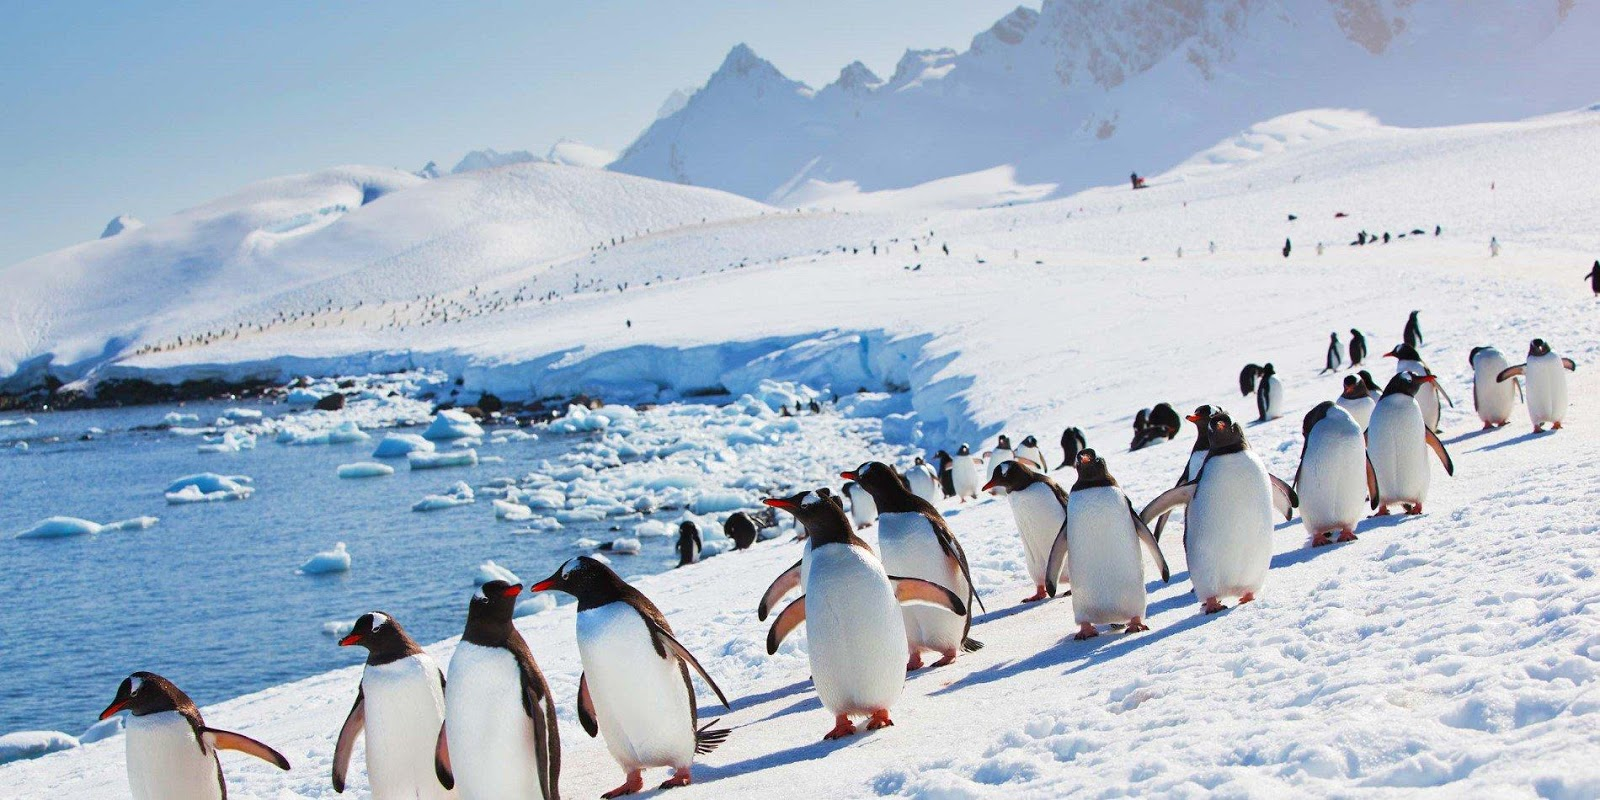 Why Are There No Penguins In The North Pole?